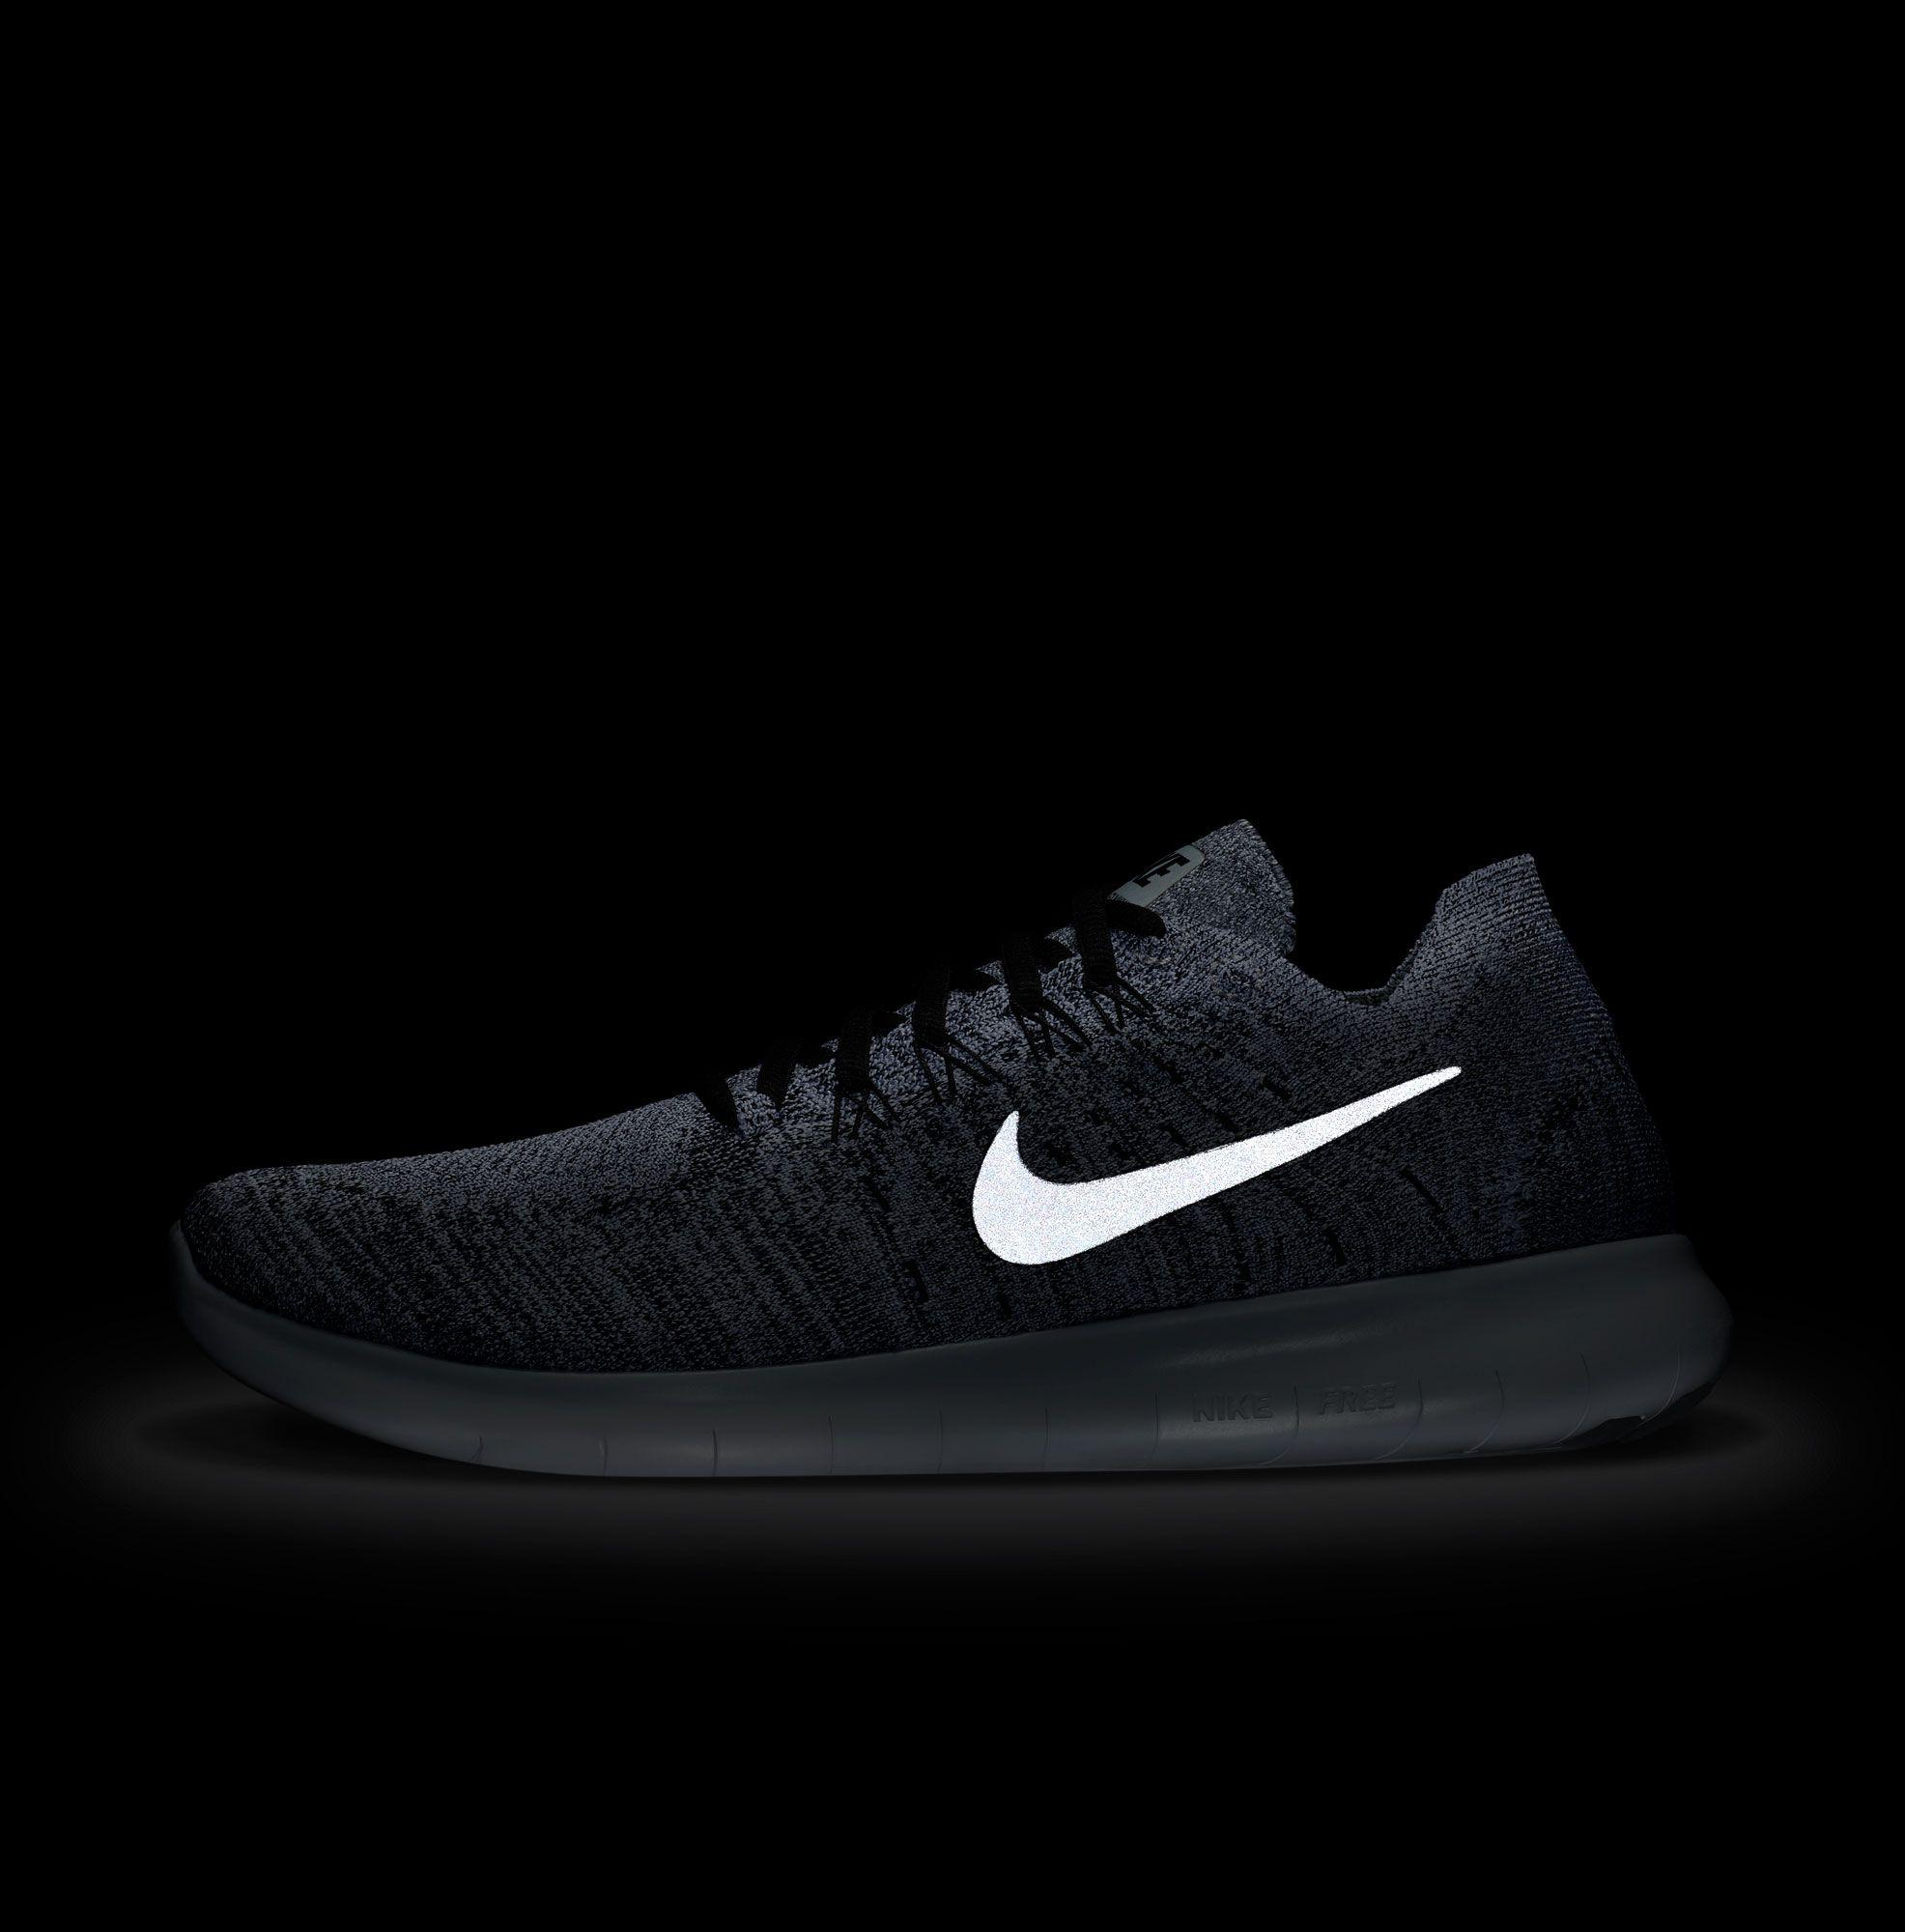 5729c55c0c86 Lyst - Nike Free Rn Flyknit 2017 Running Shoes in Gray for Men